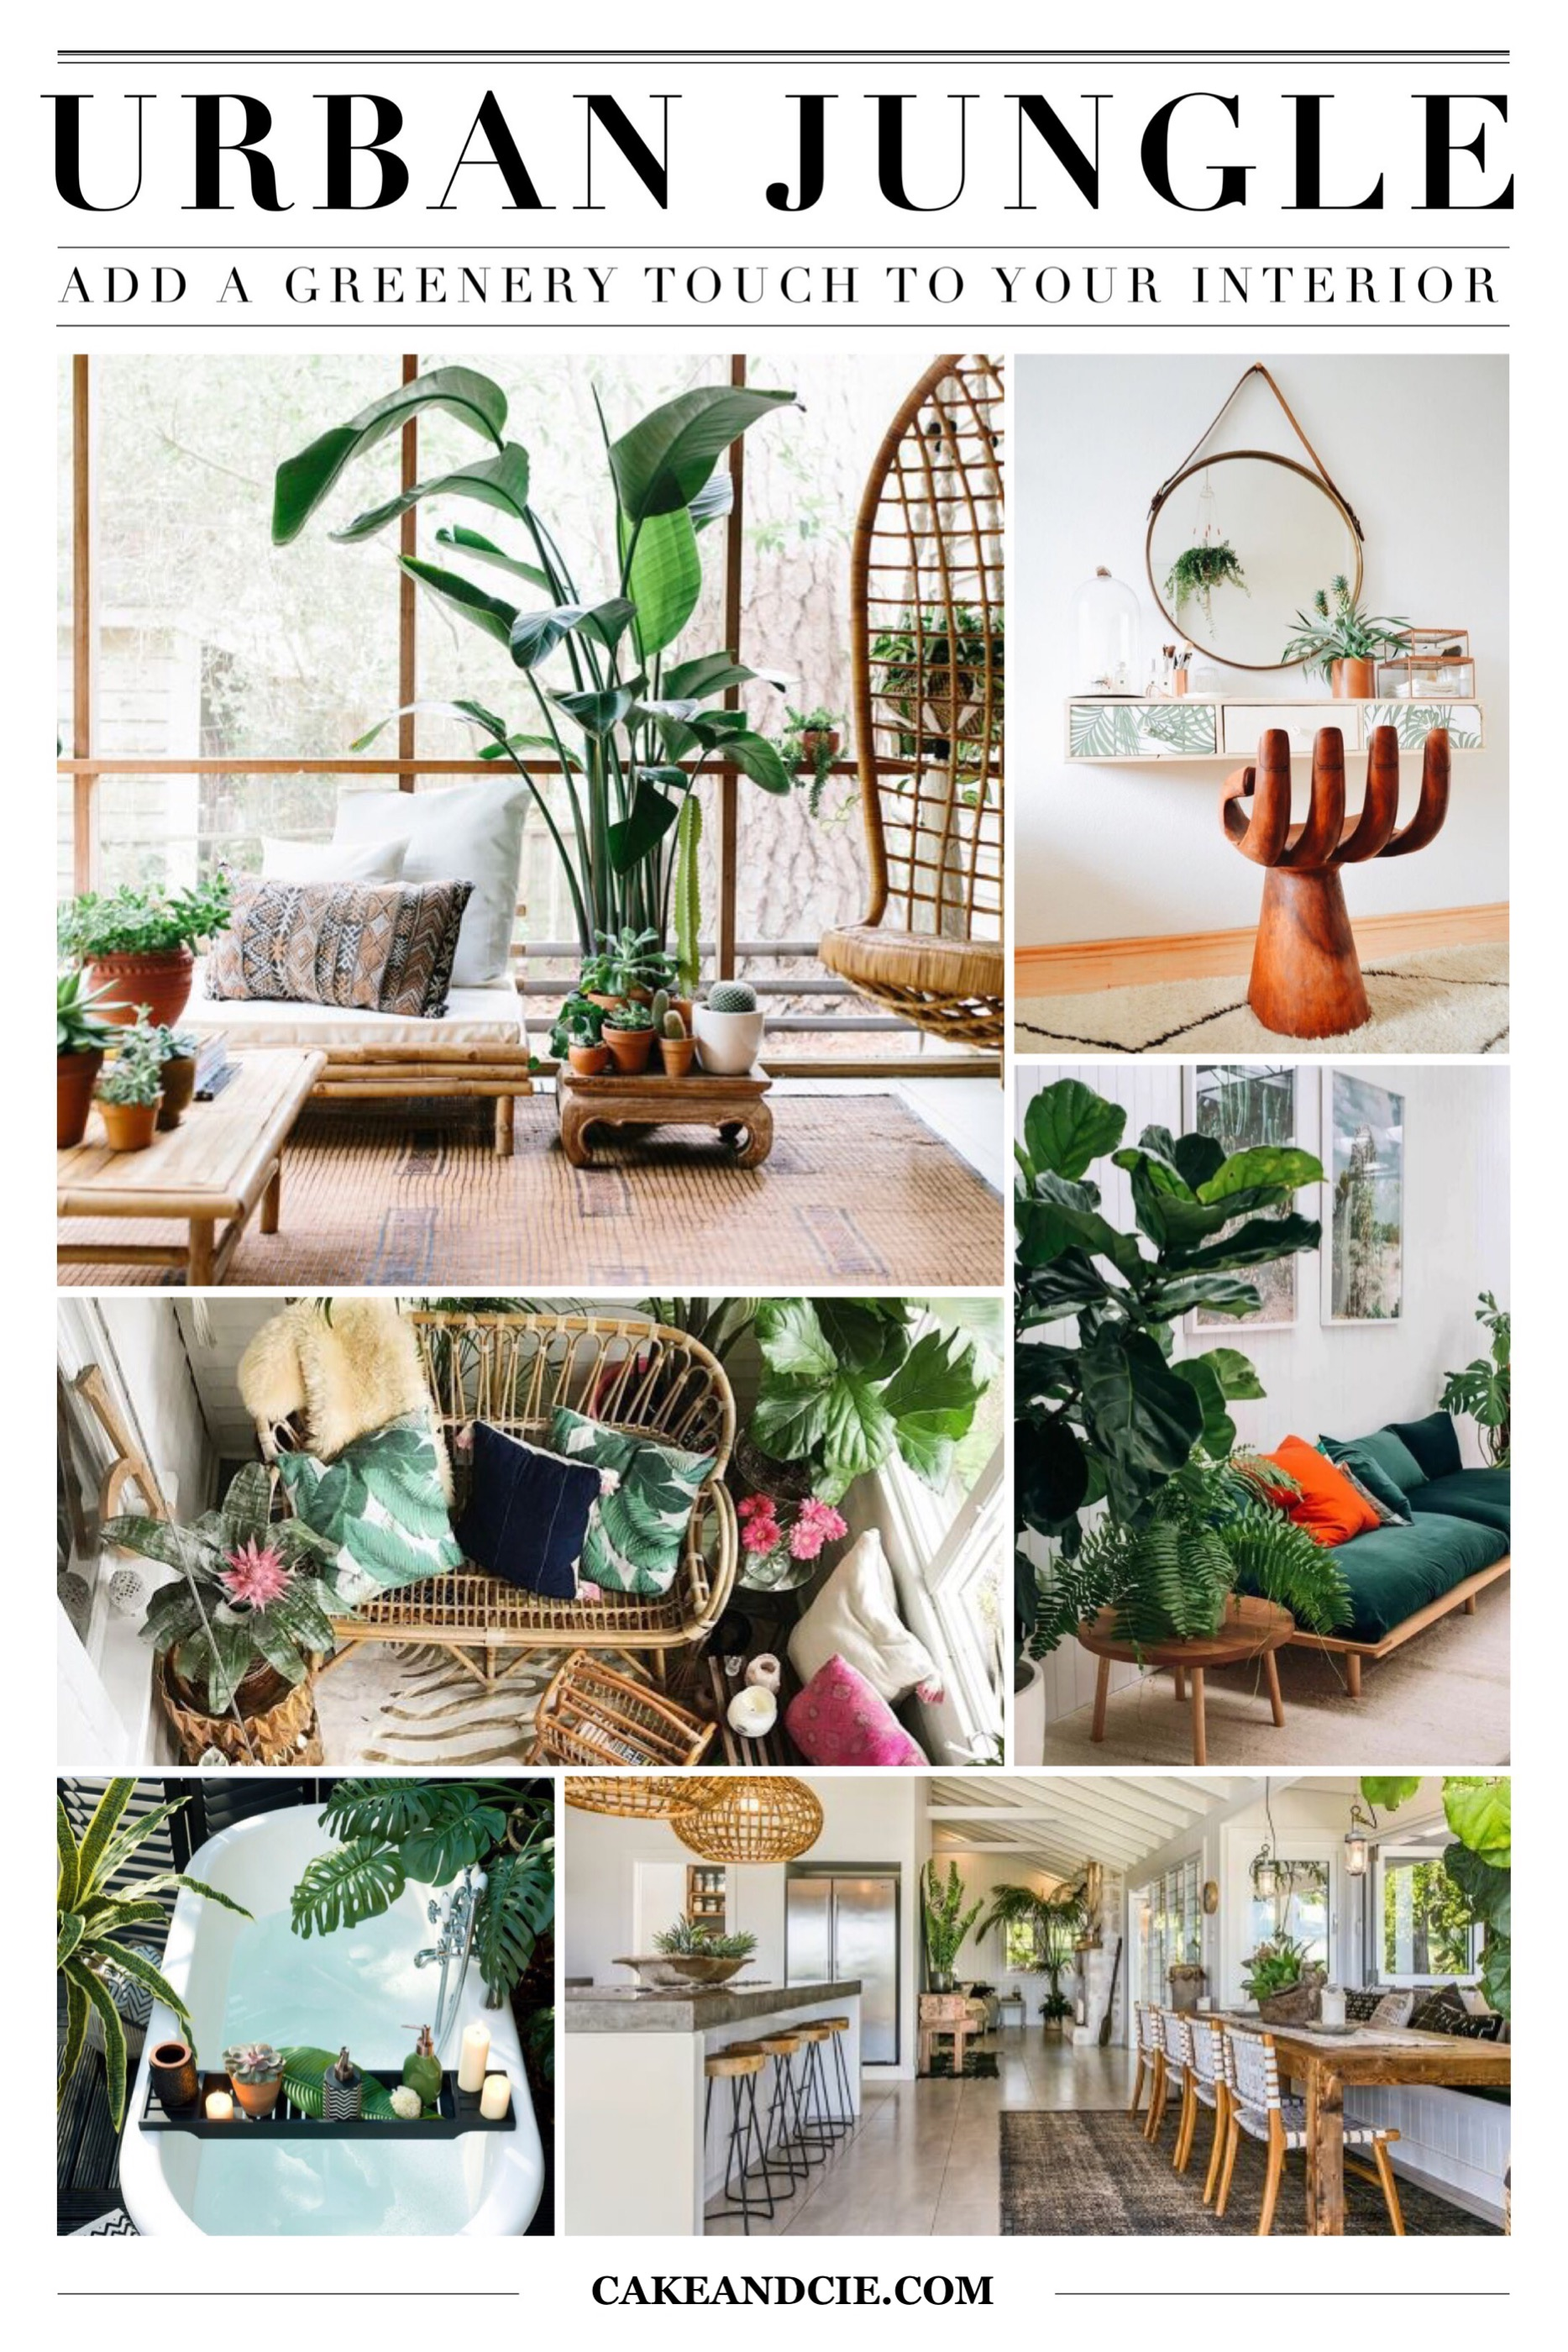 Urban jungle - Add a greenery touch to your interior